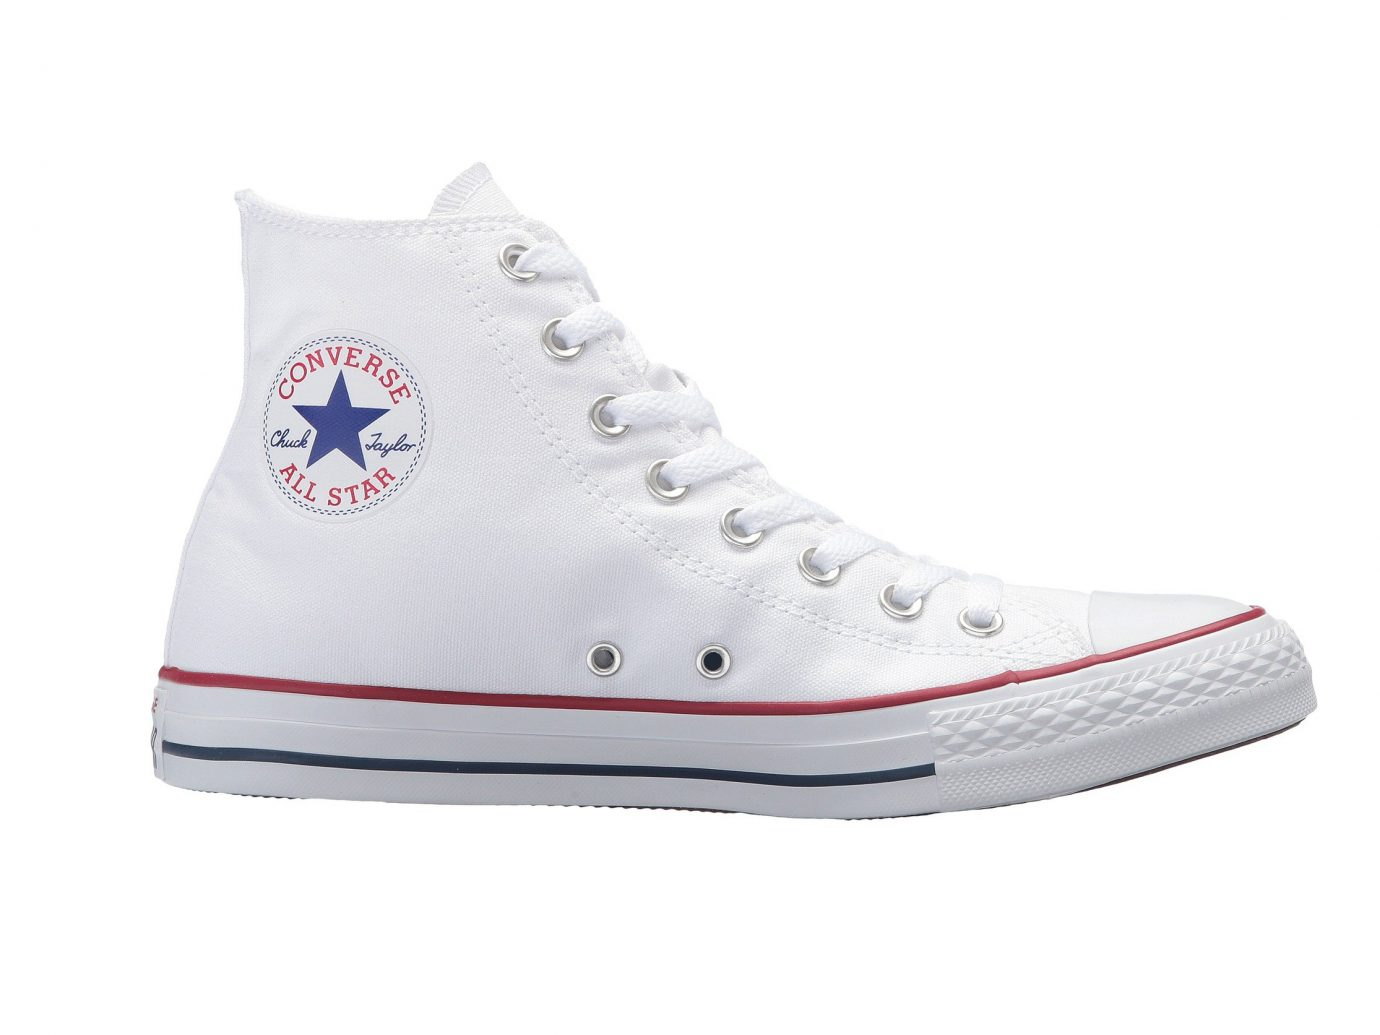 Converse Chuck Taylor All Star Hi Tops